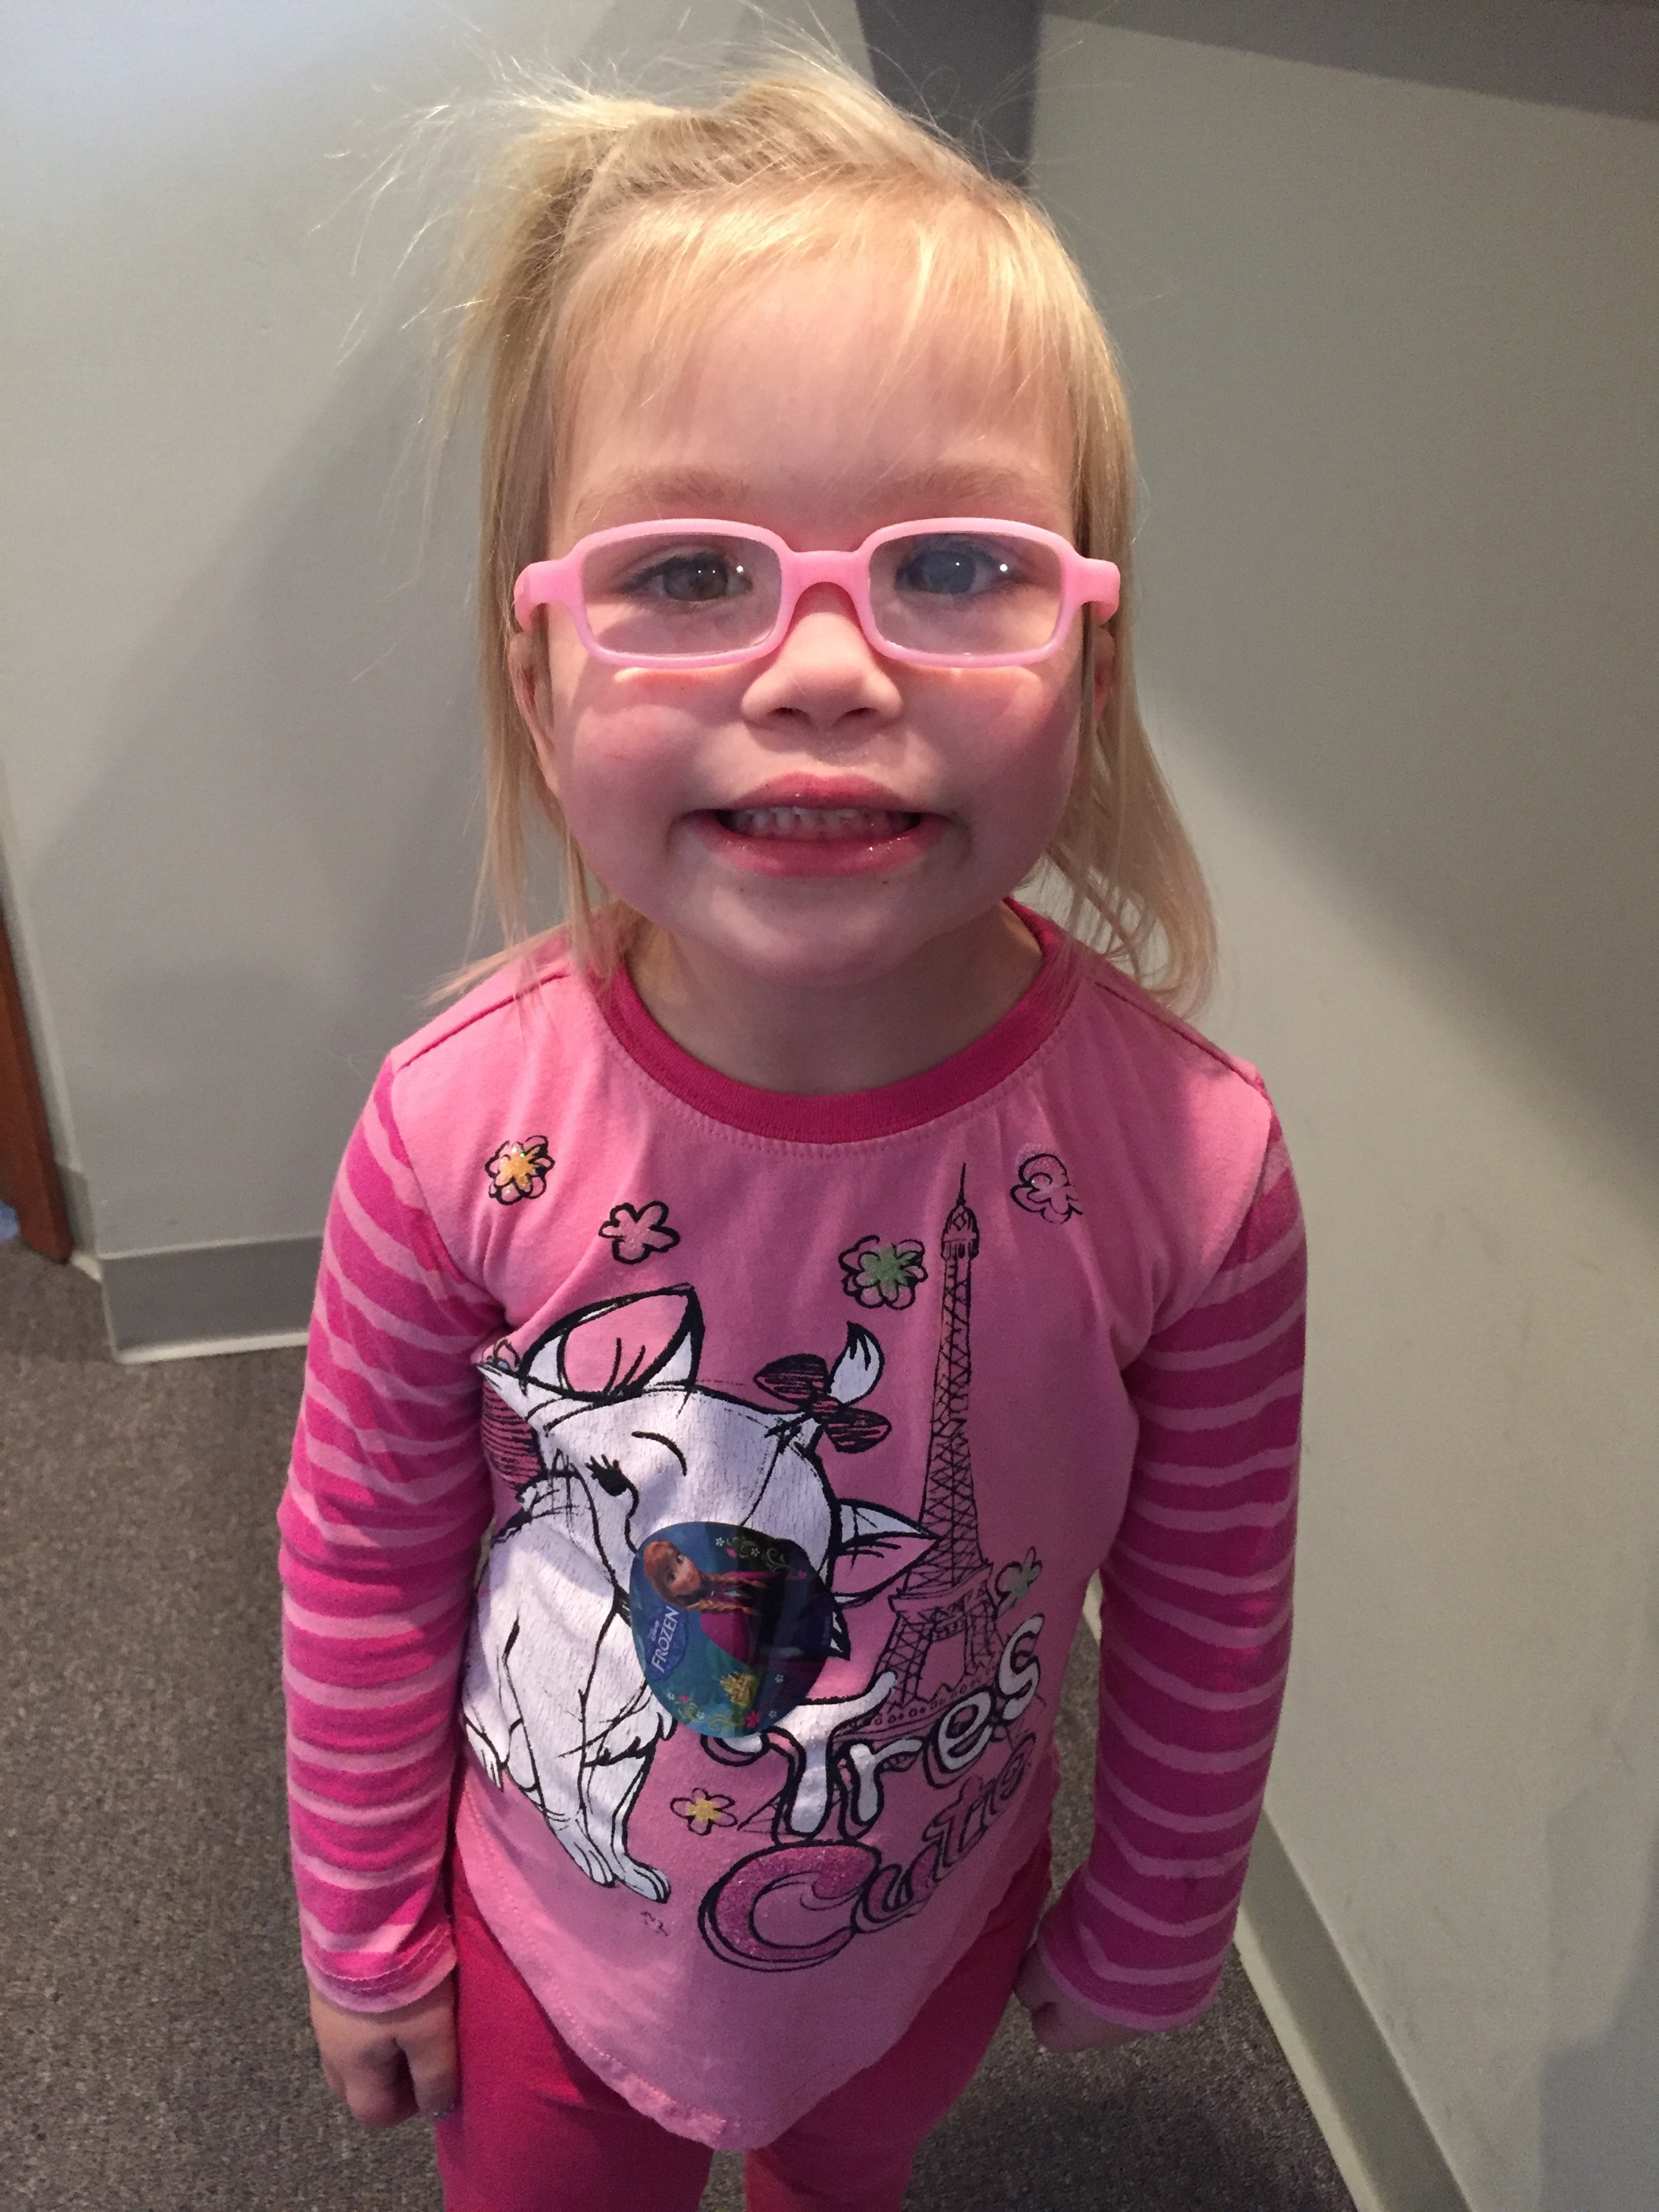 721a88c846c Yesterday O had a check up with her Ophthalmologist to assess how she is  progressing with her newest prescription (updated in September to R+4.50  and L ...